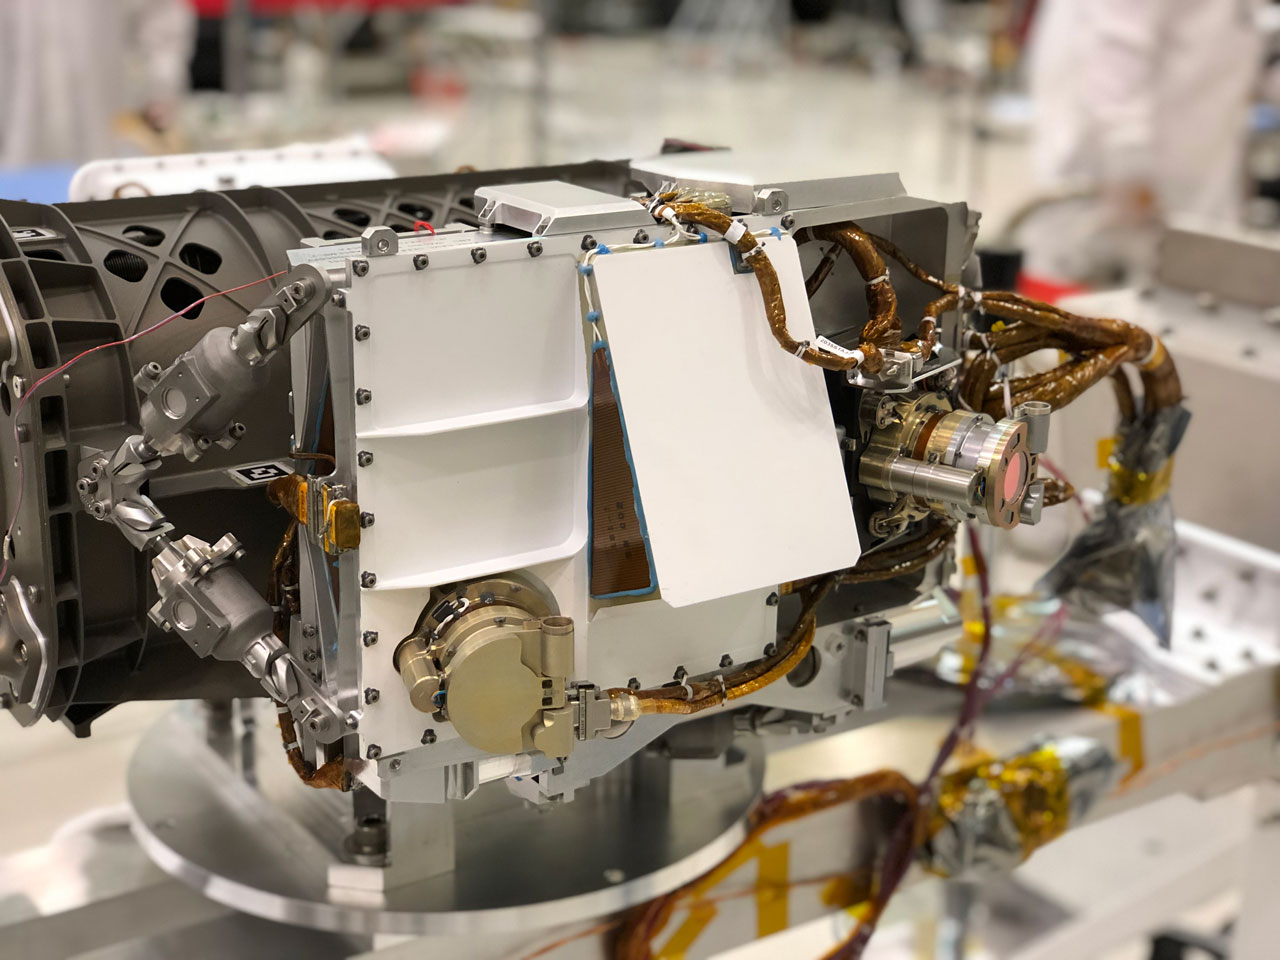 The SHERLOC instrument is located at the end of the robotic arm on NASA's Mars 2020 rover.